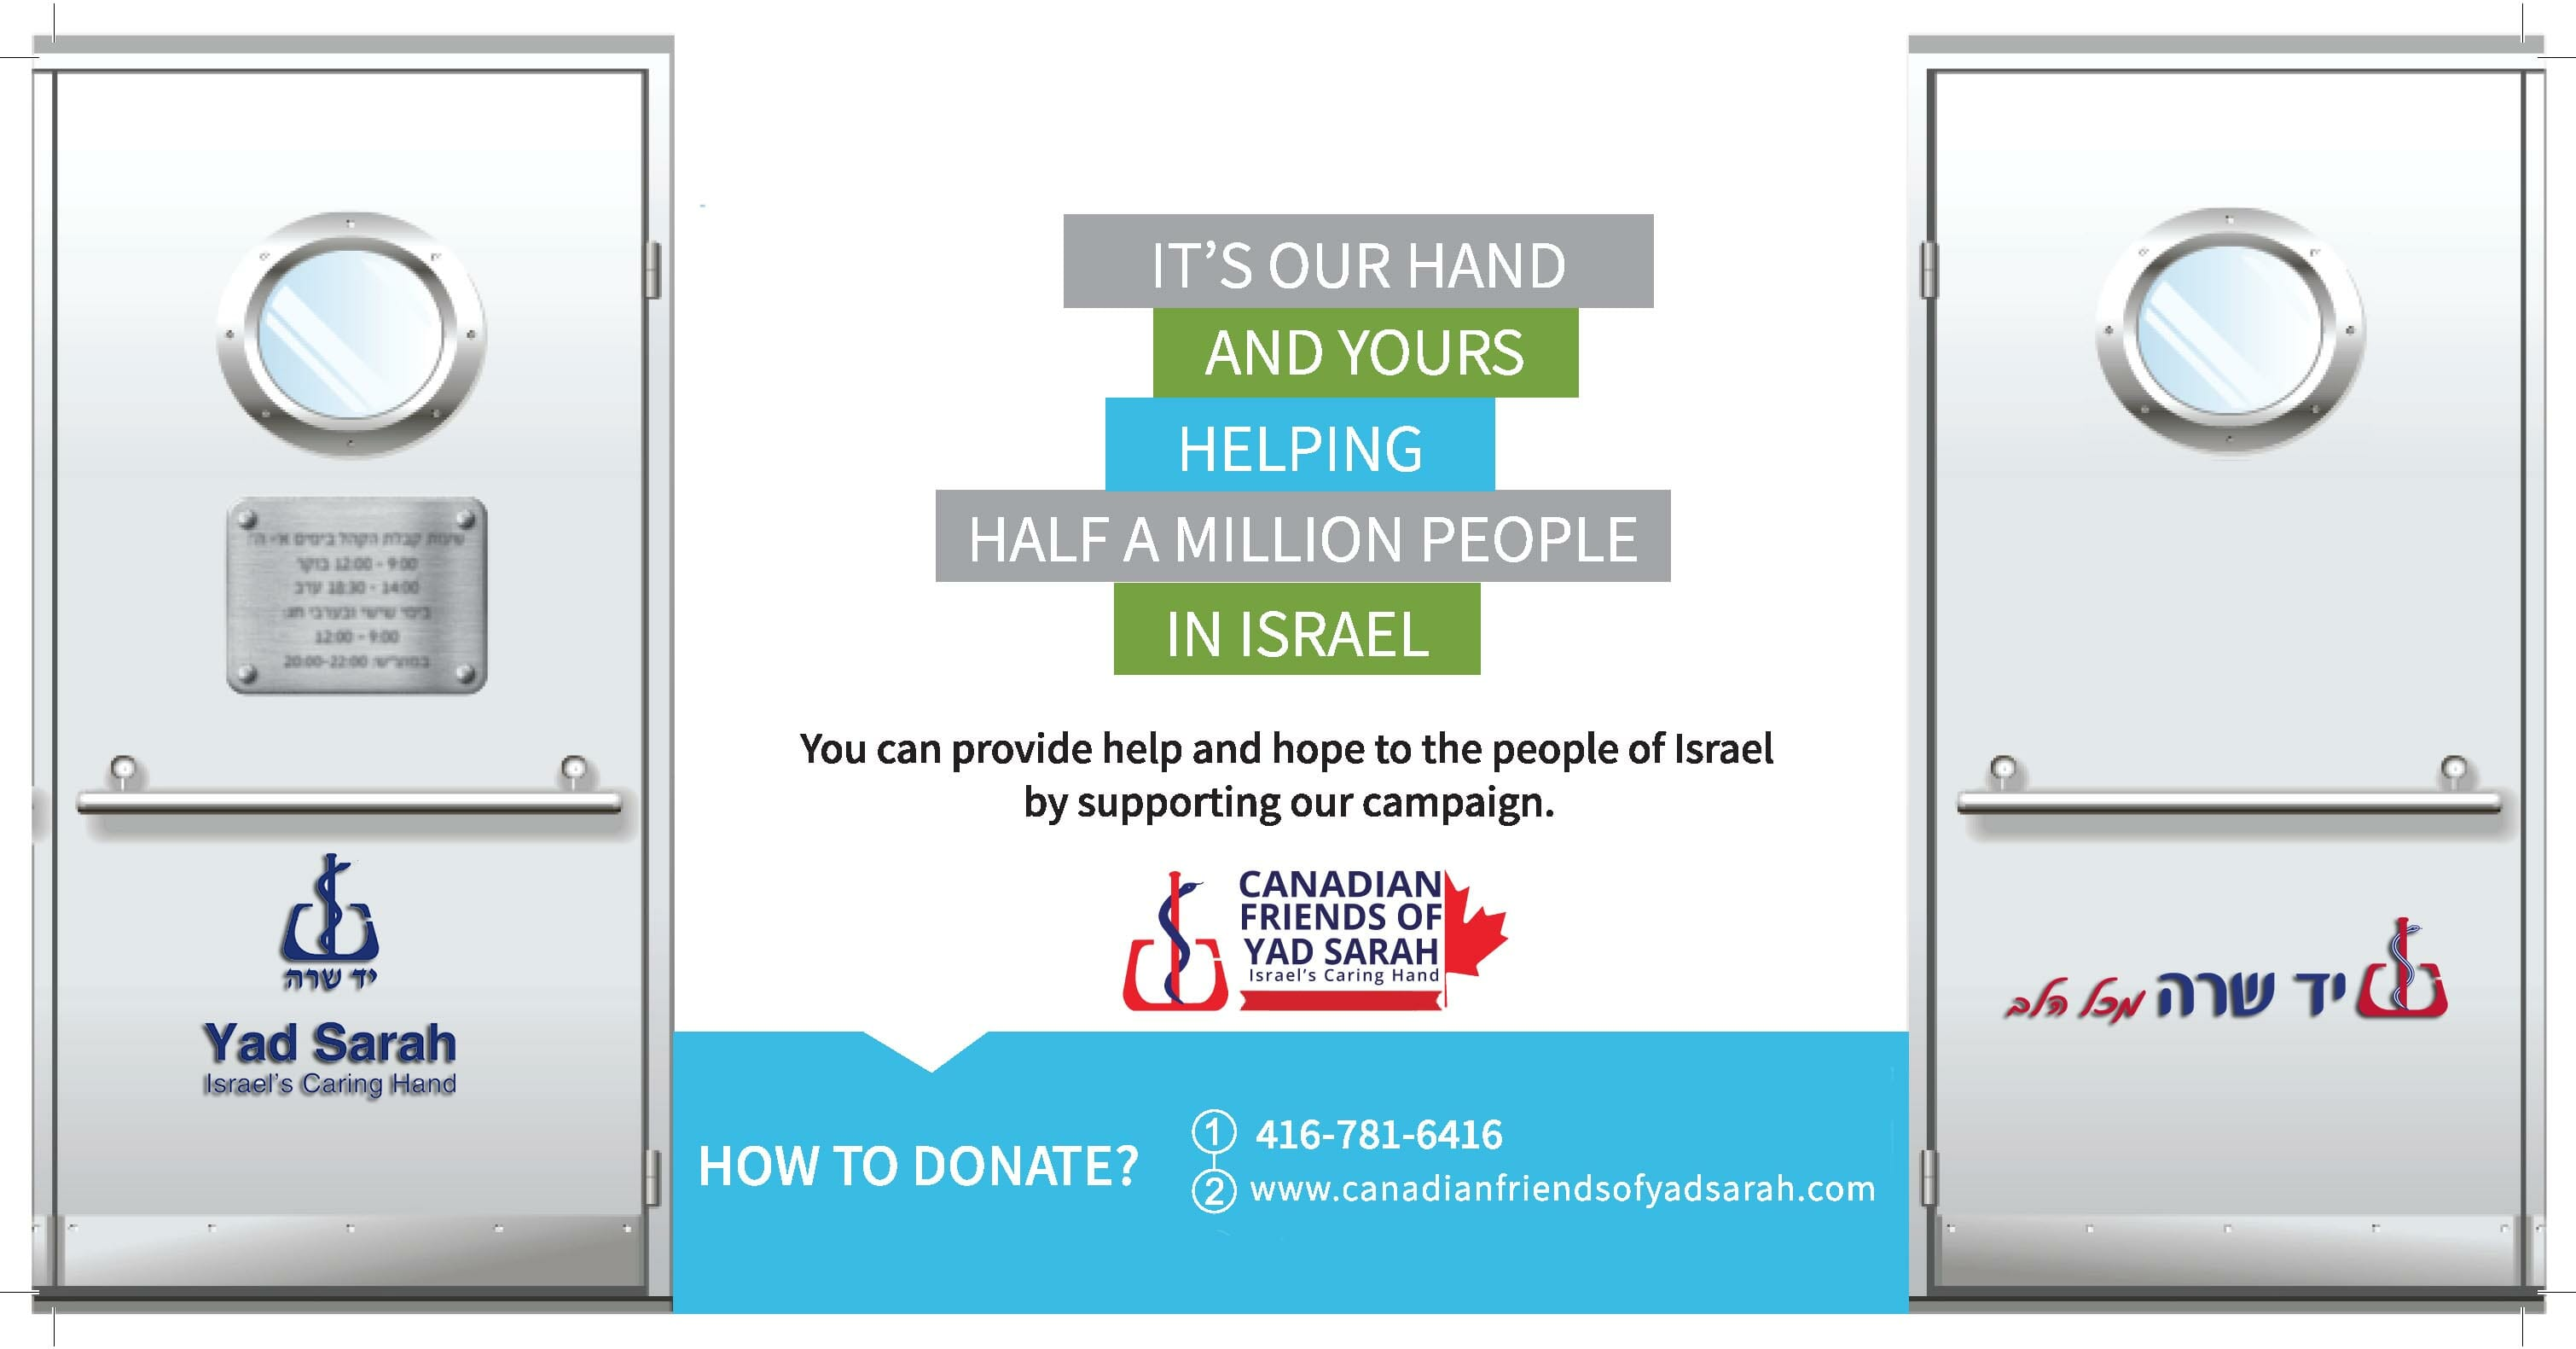 We can't do it alone. The work of Yad Sarah is only possible with the support of loving, caring individuals. Some donate their time, some provide equipment, some offer their expertise, and others – like you – provide funds needed to fuel our work. Your gifts allow us to purchase home care equipment and wheelchair-accessible vans, to enable our volunteers to reach out to the isolated and homebound and to ensure our mobile dental clinic team can provide care in remote areas. Please make your donation now and frequently. Your contribution supports those who support our homeland. Call our office at (416) 781-6416 or donate online anytime at https://canadianfriendsofyadsarah.com.